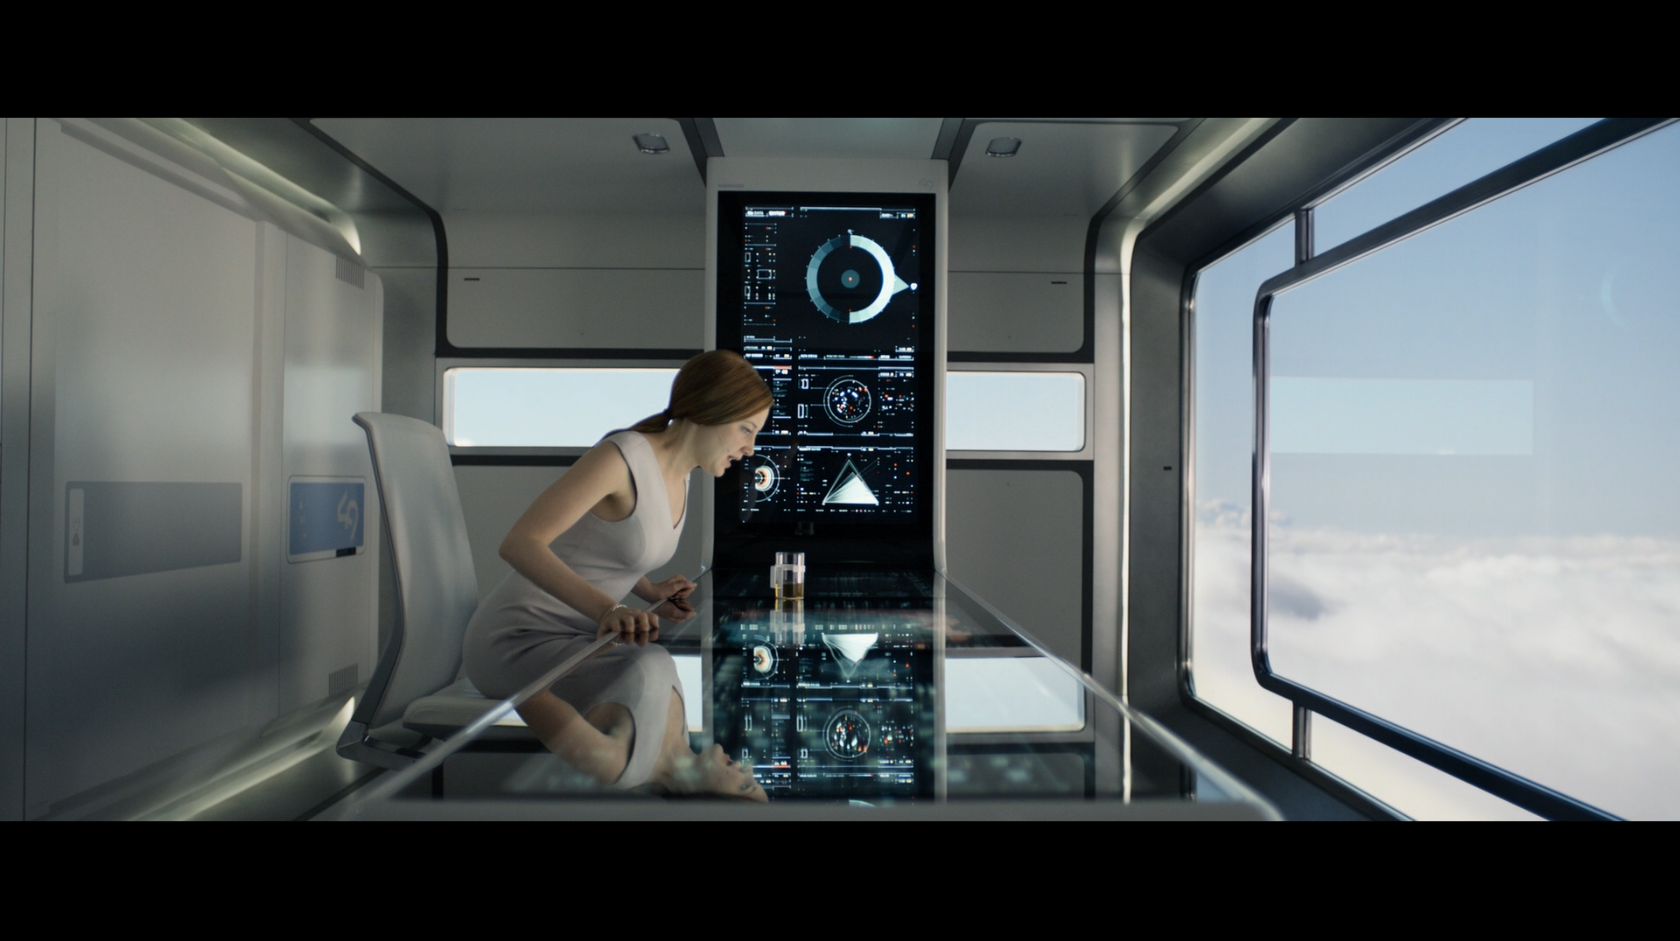 Victoria from the movie Oblivion seated at a large touch-based interface grabbing an icon that represents a drone